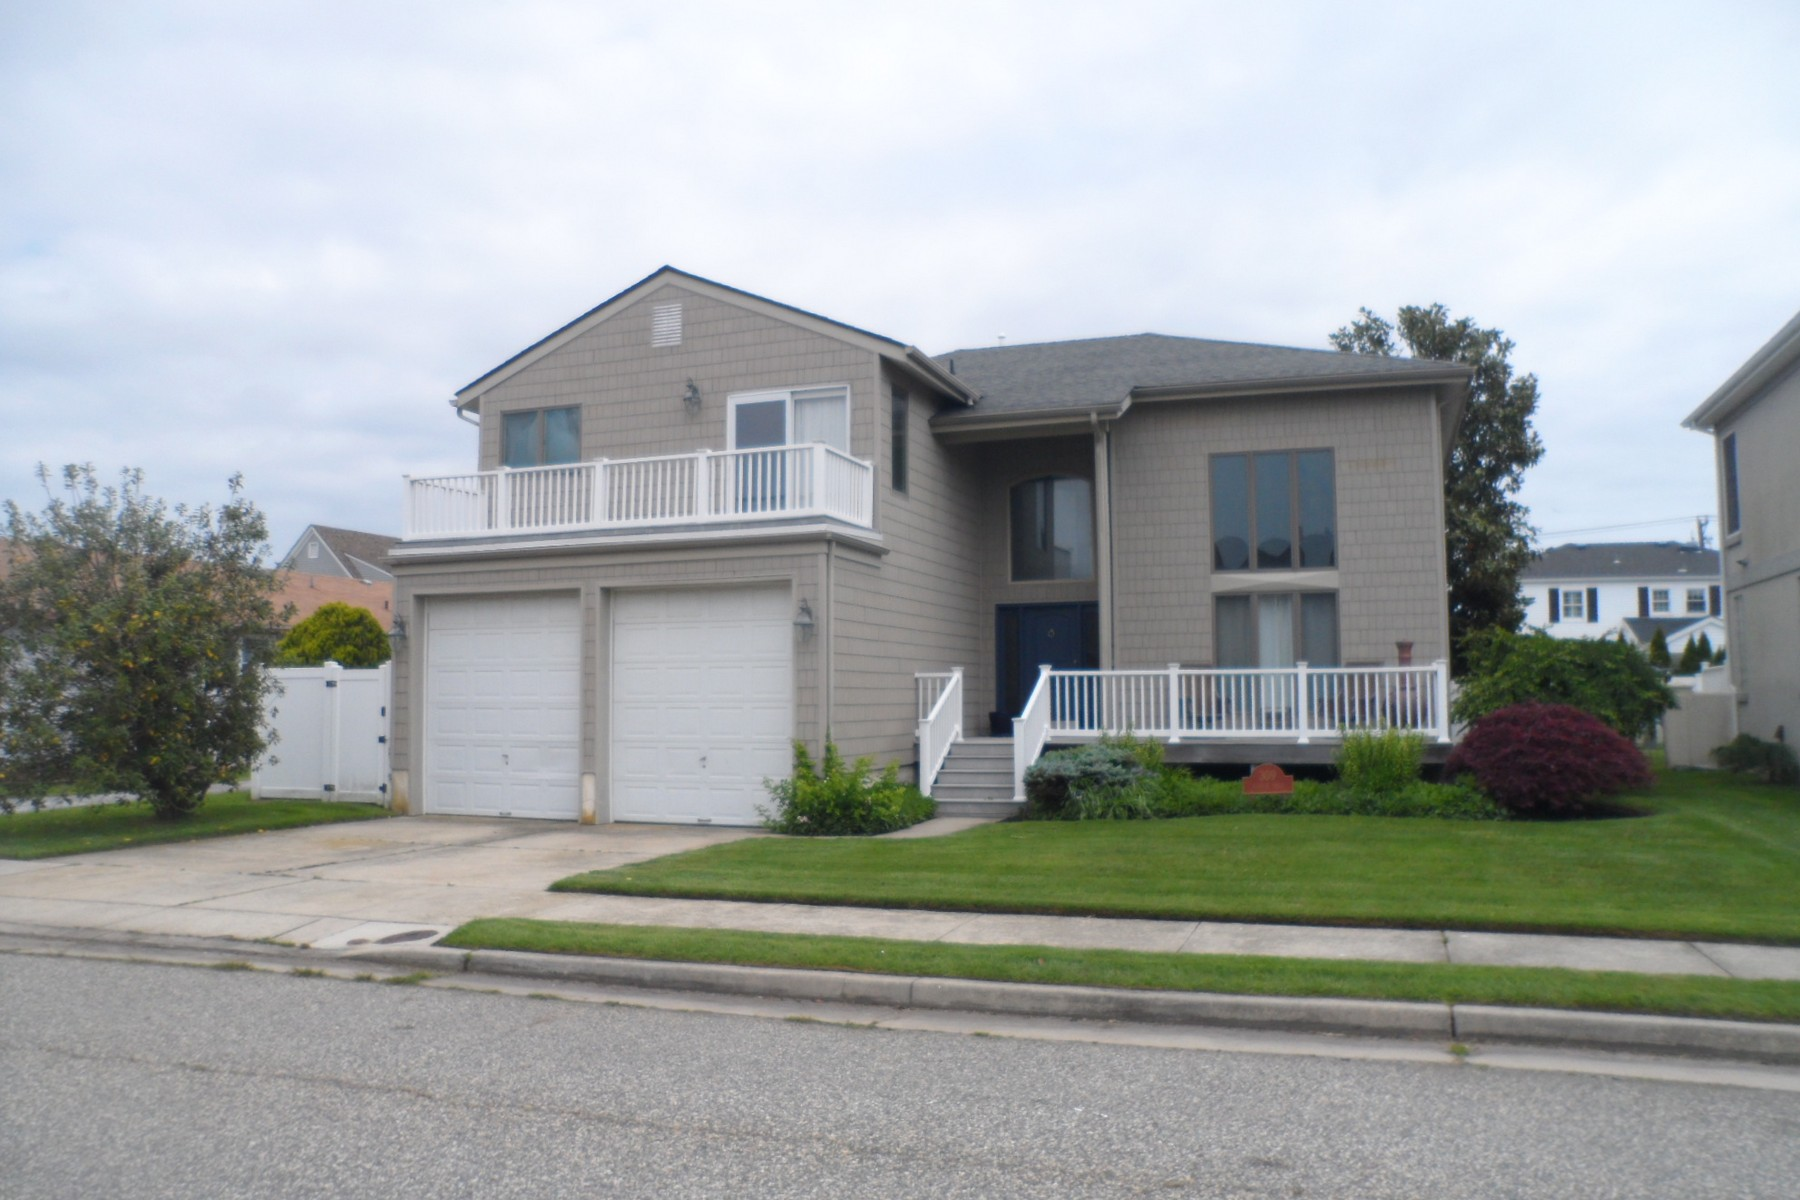 Single Family Home for Sale at 309 Windsor Drive Ventnor, New Jersey, 08406 United States